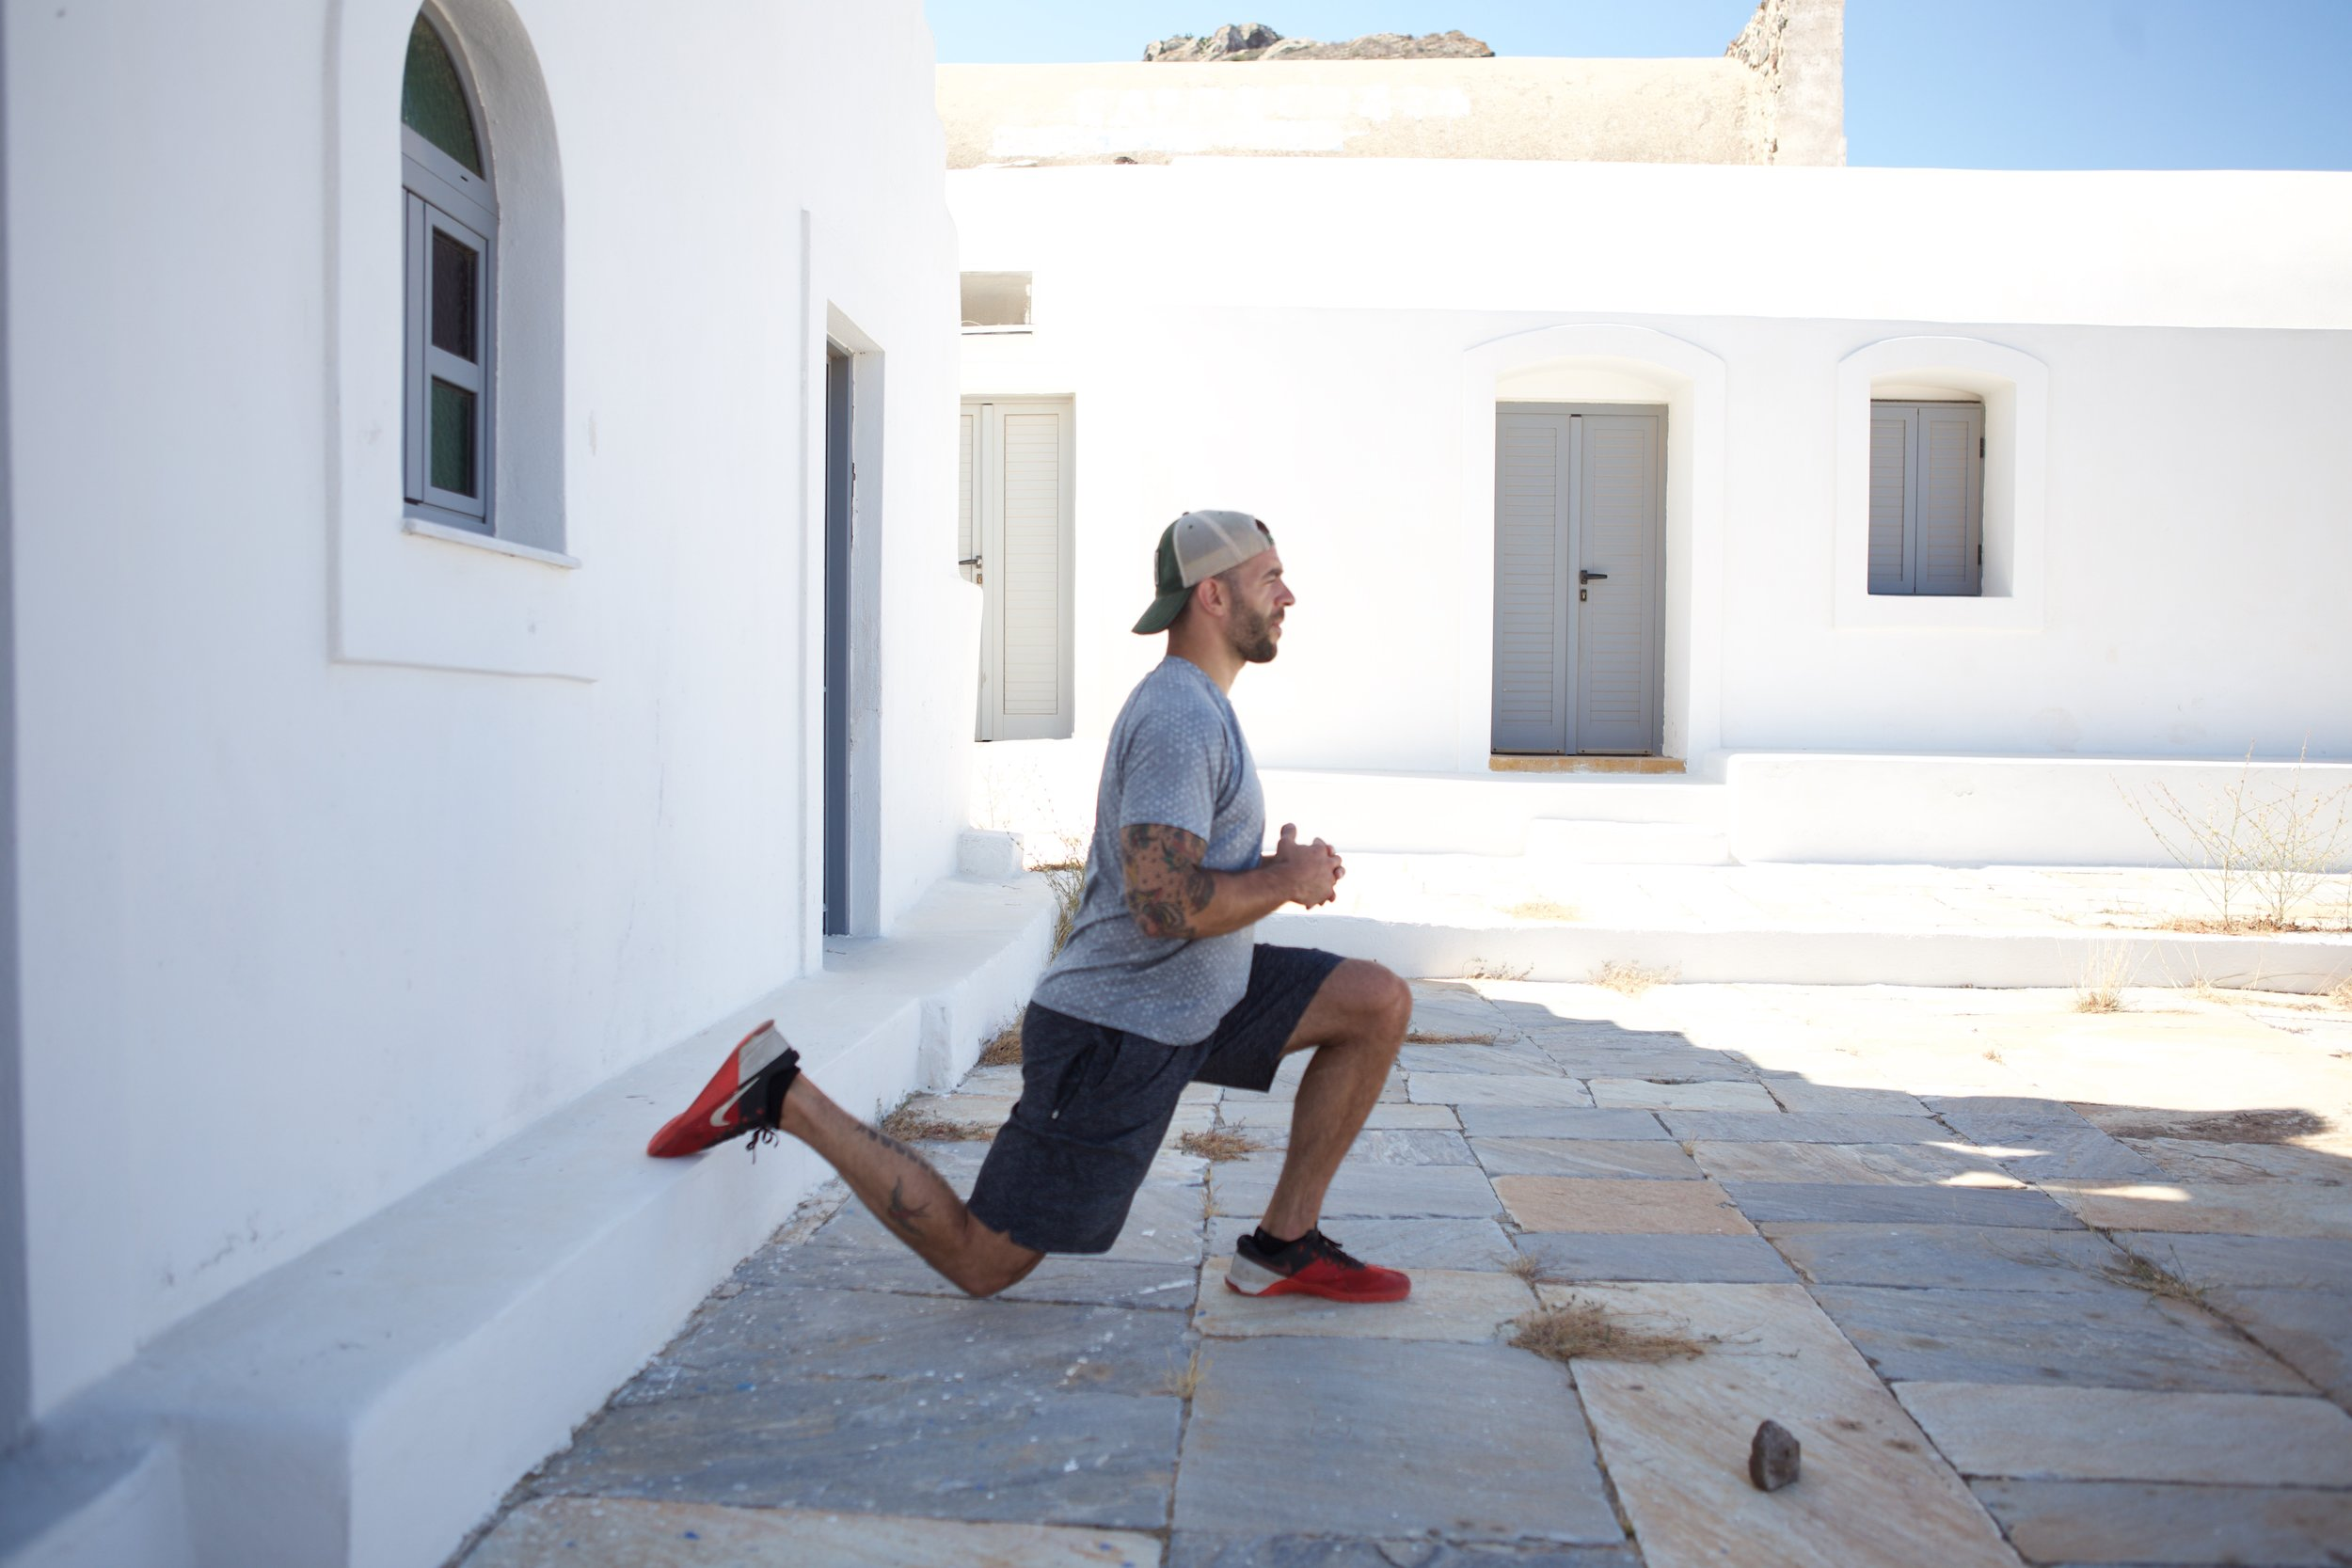 A travel workout you can do with minimal equipment